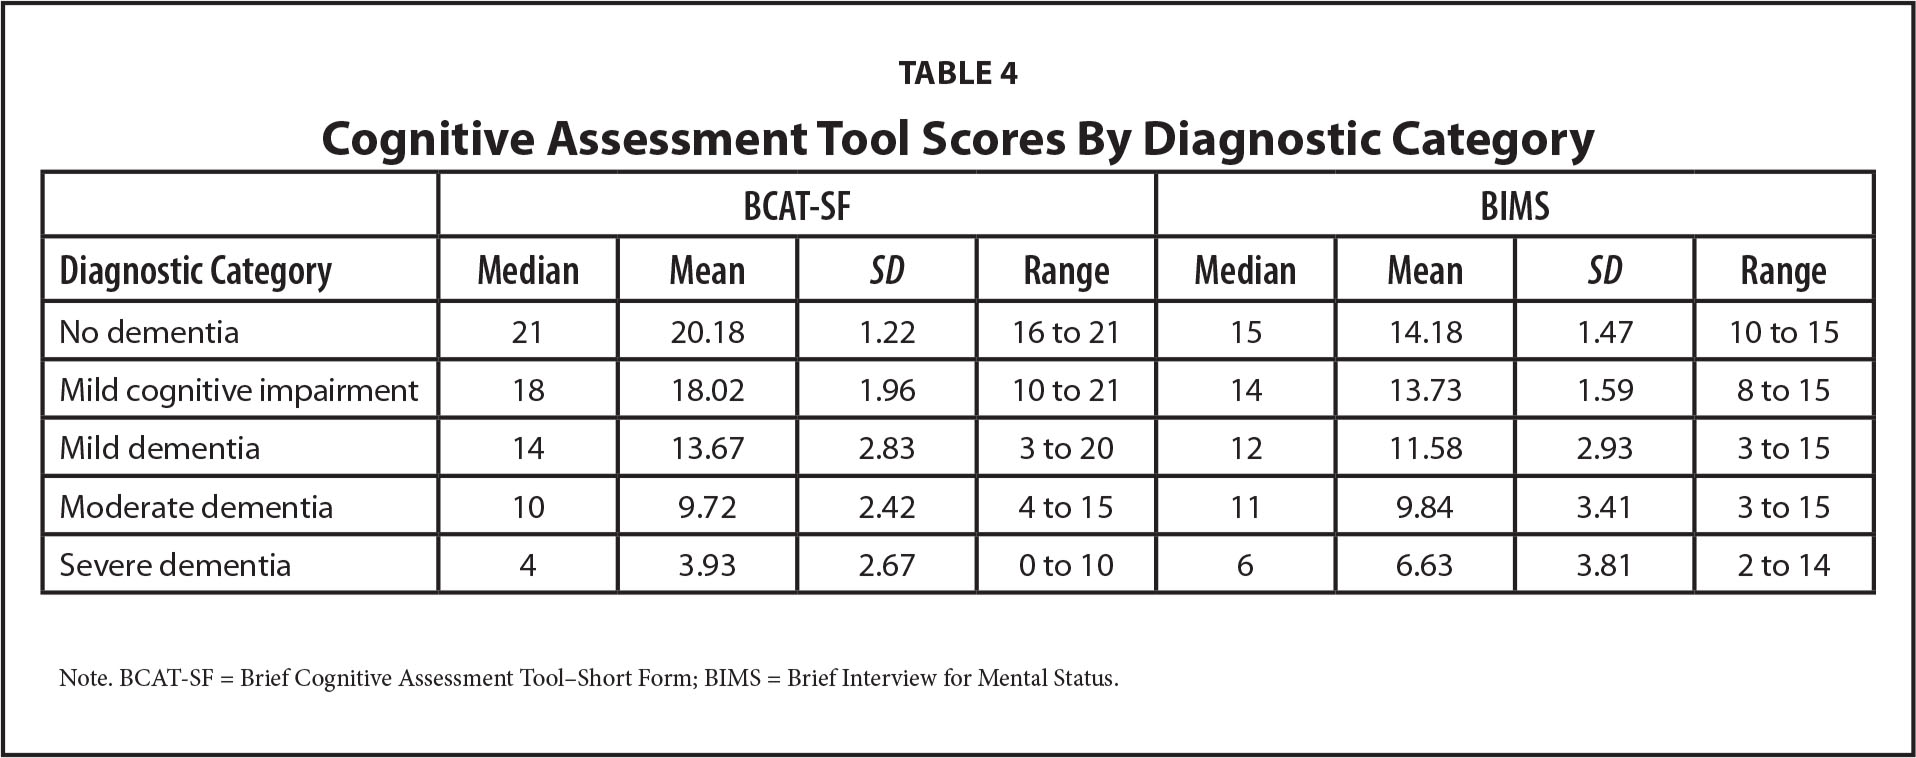 Cognitive Assessment Tool Scores By Diagnostic Category